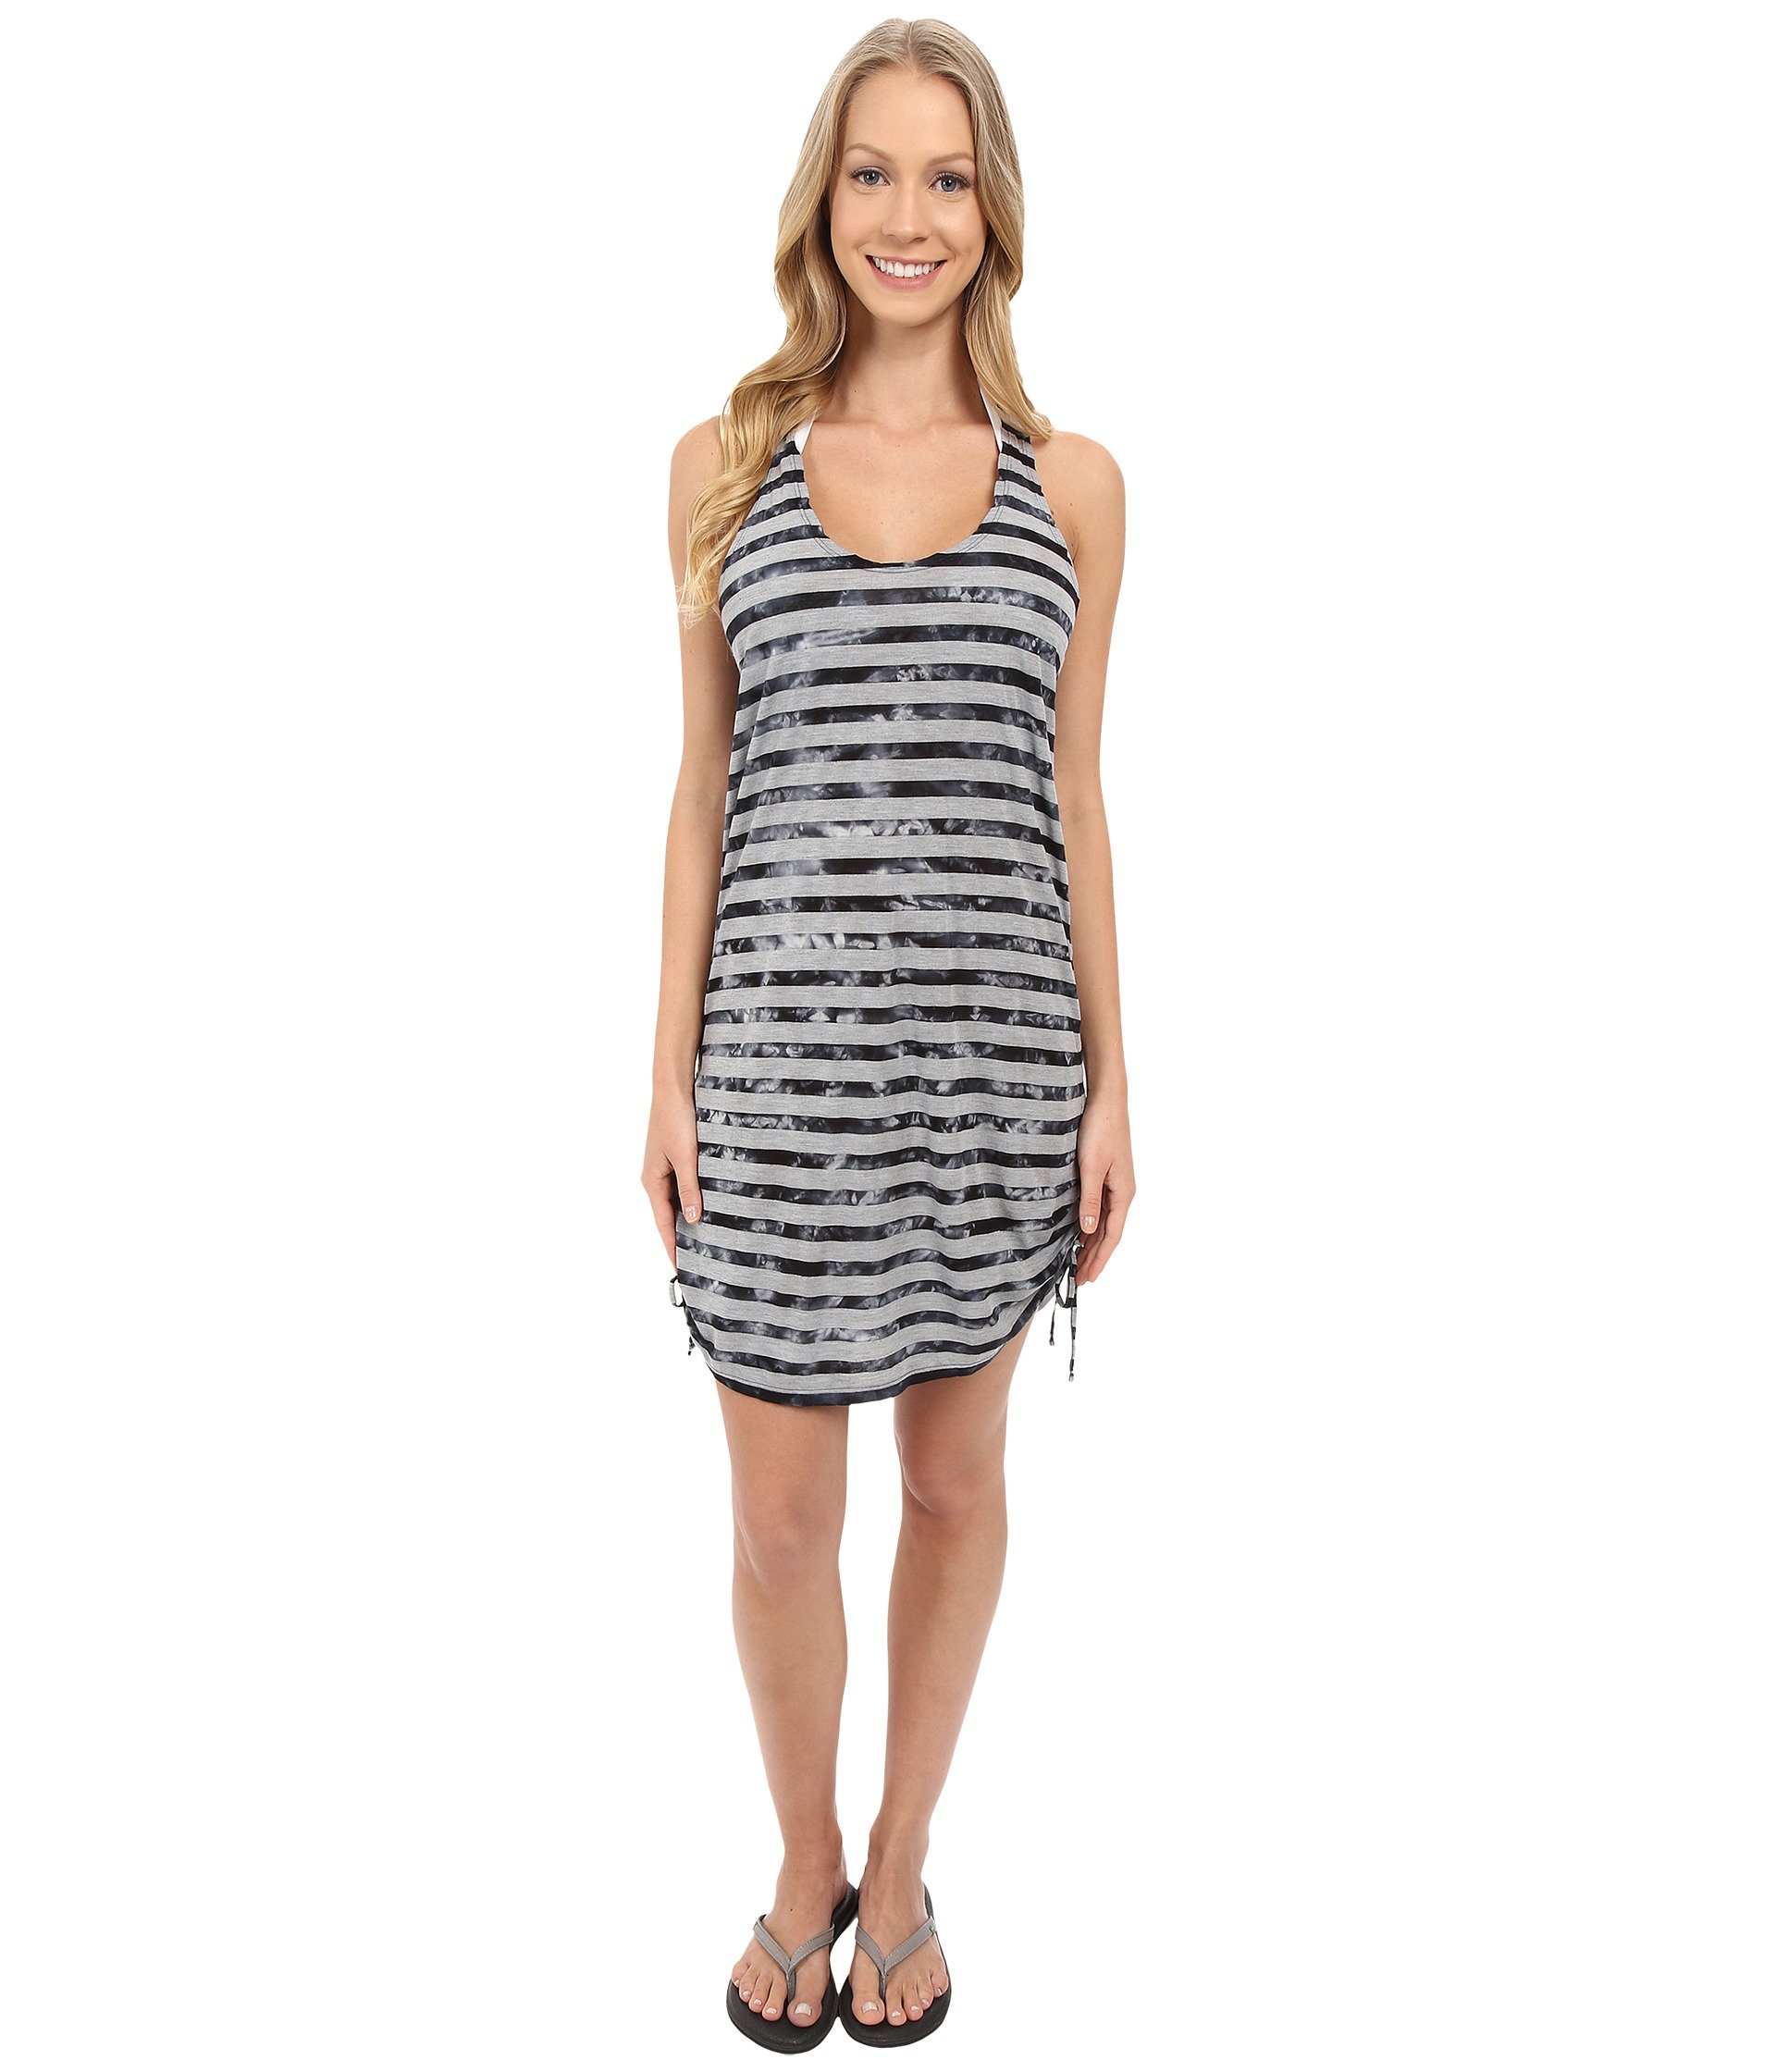 Salida de Baño para Mujer Speedo Tie-Dye Stripe Shirred t-shirt Dress Cover-Up  + Speedo en VeoyCompro.net